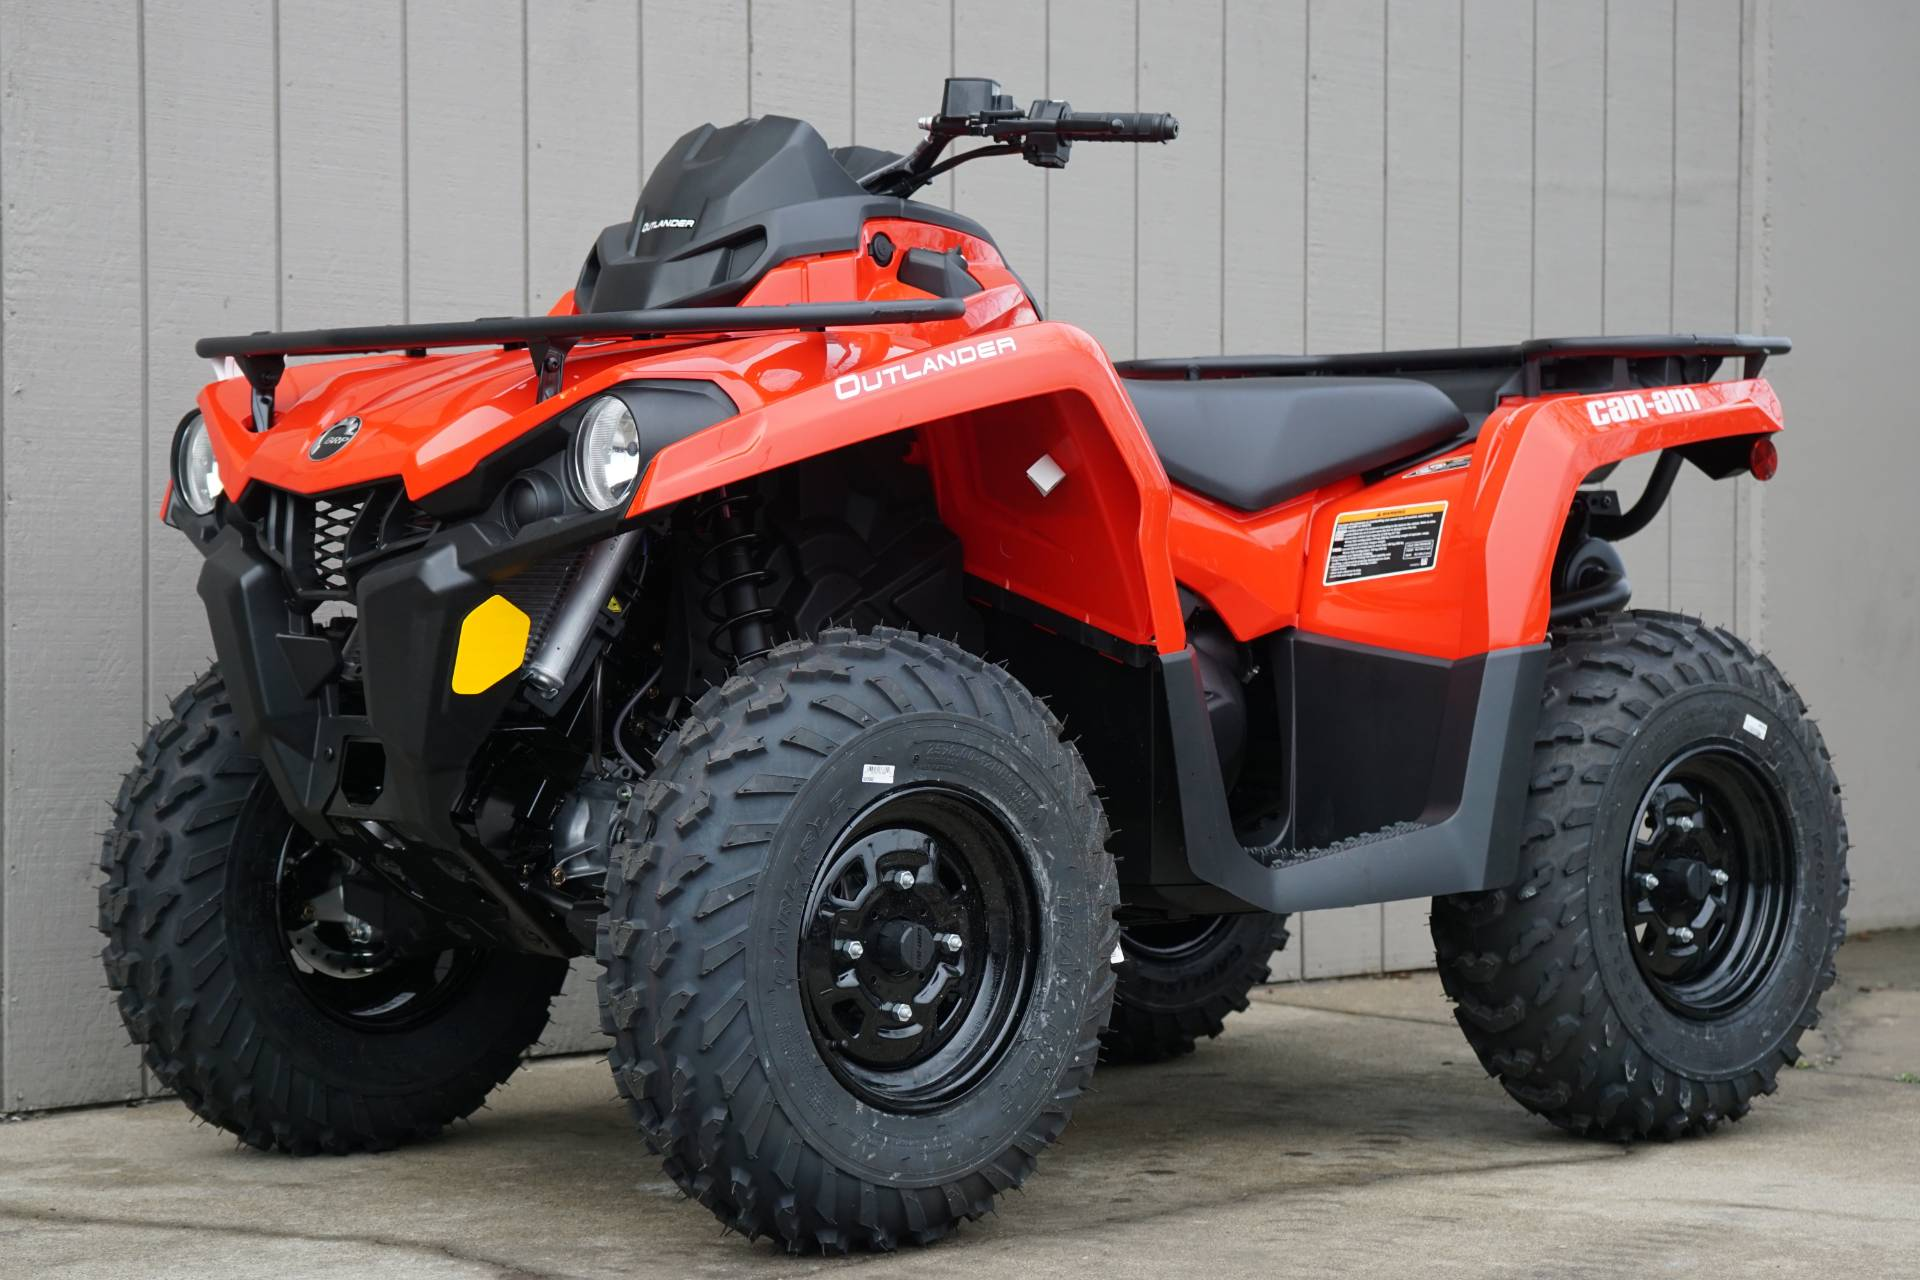 2019 Can-Am Outlander 450 for sale 83102